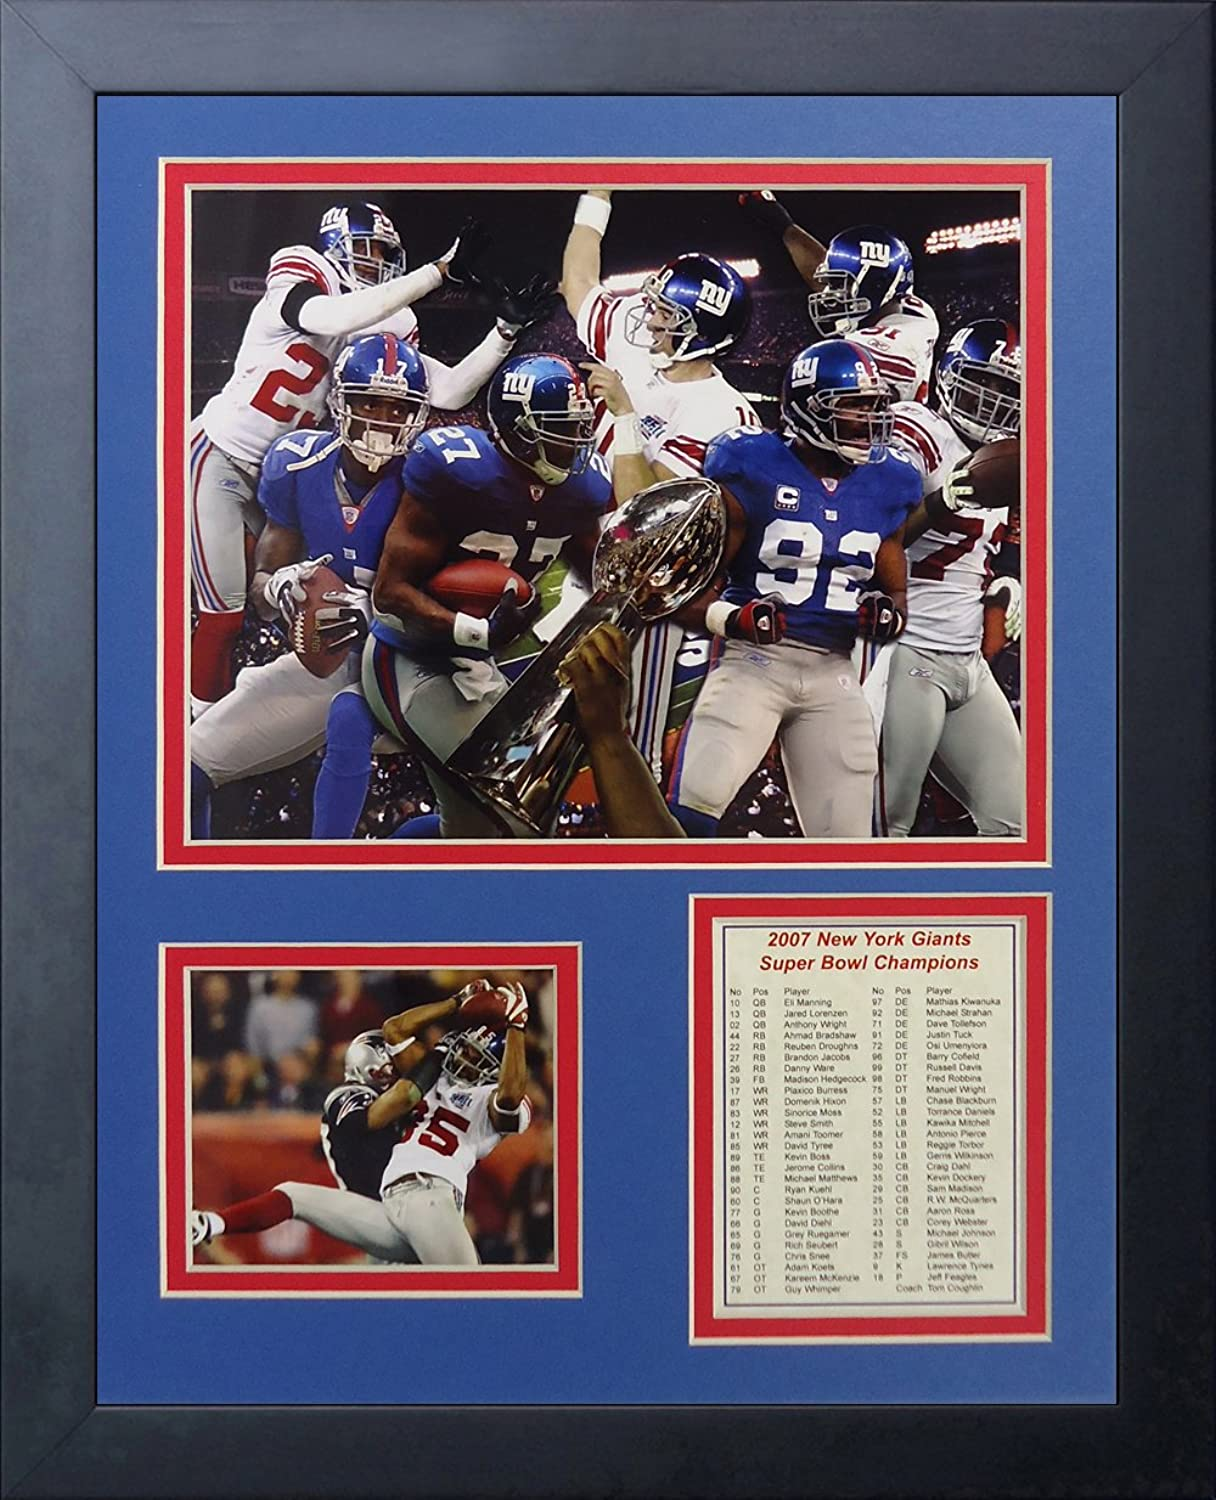 Legends Never Die 2007 New York Giants Super Bowl Champions  Framed Photo Collage, 11 x 14-Inch